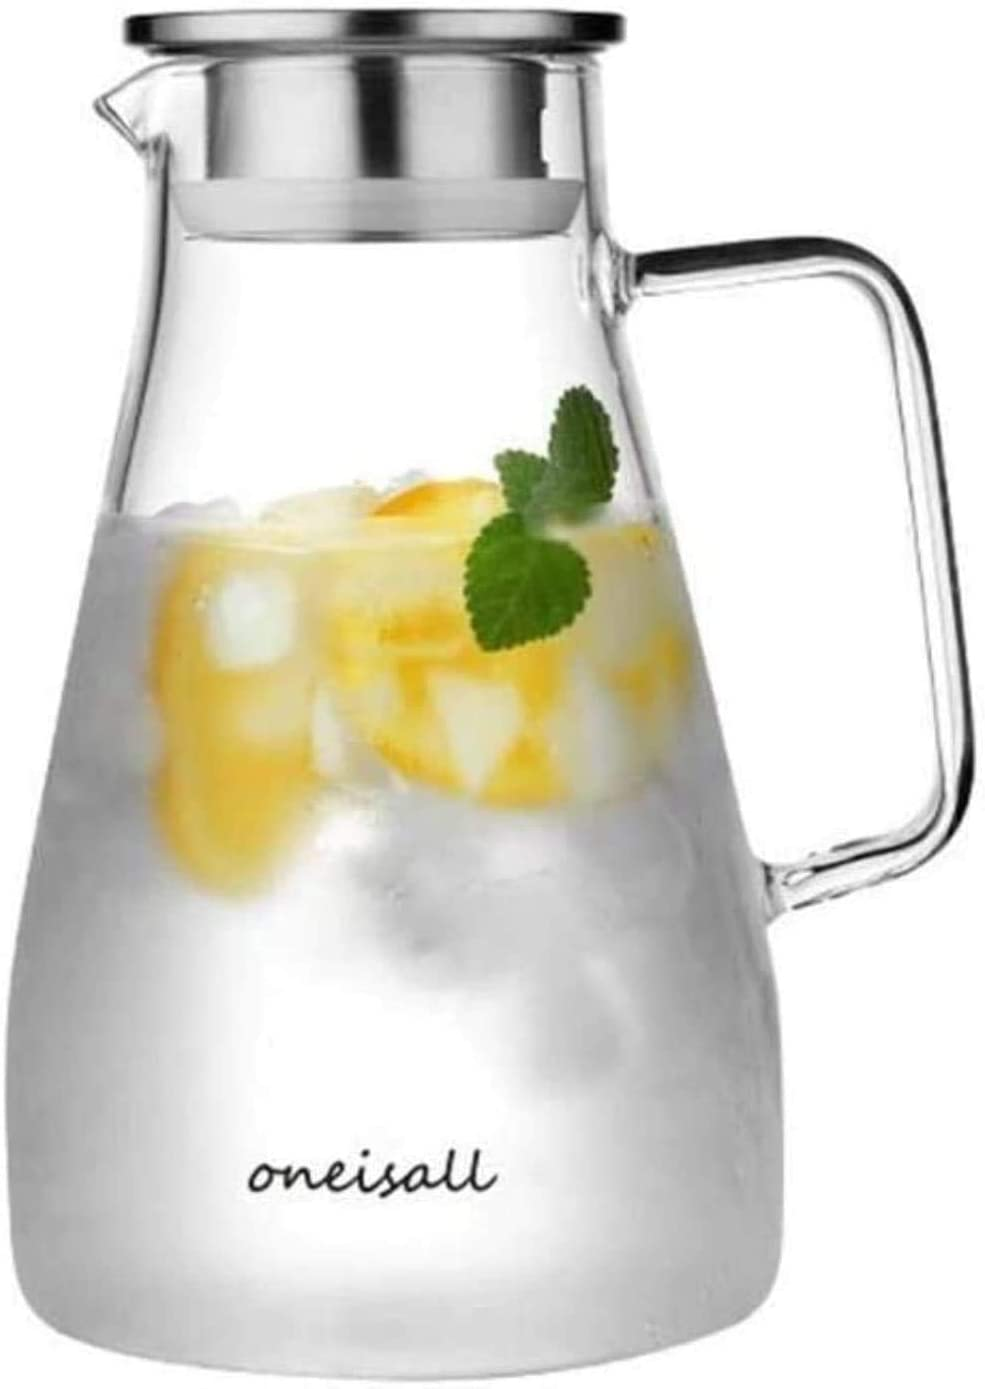 High temperature resistant glass jug/Water Jug Glass Teapot Pitcher with Lid Iced and Handle Borosilicate Heat-Resistant Glass Jug for Tea/hot Cold Water/ice Wine Coffee Milk Juice Beverage Carafe wit